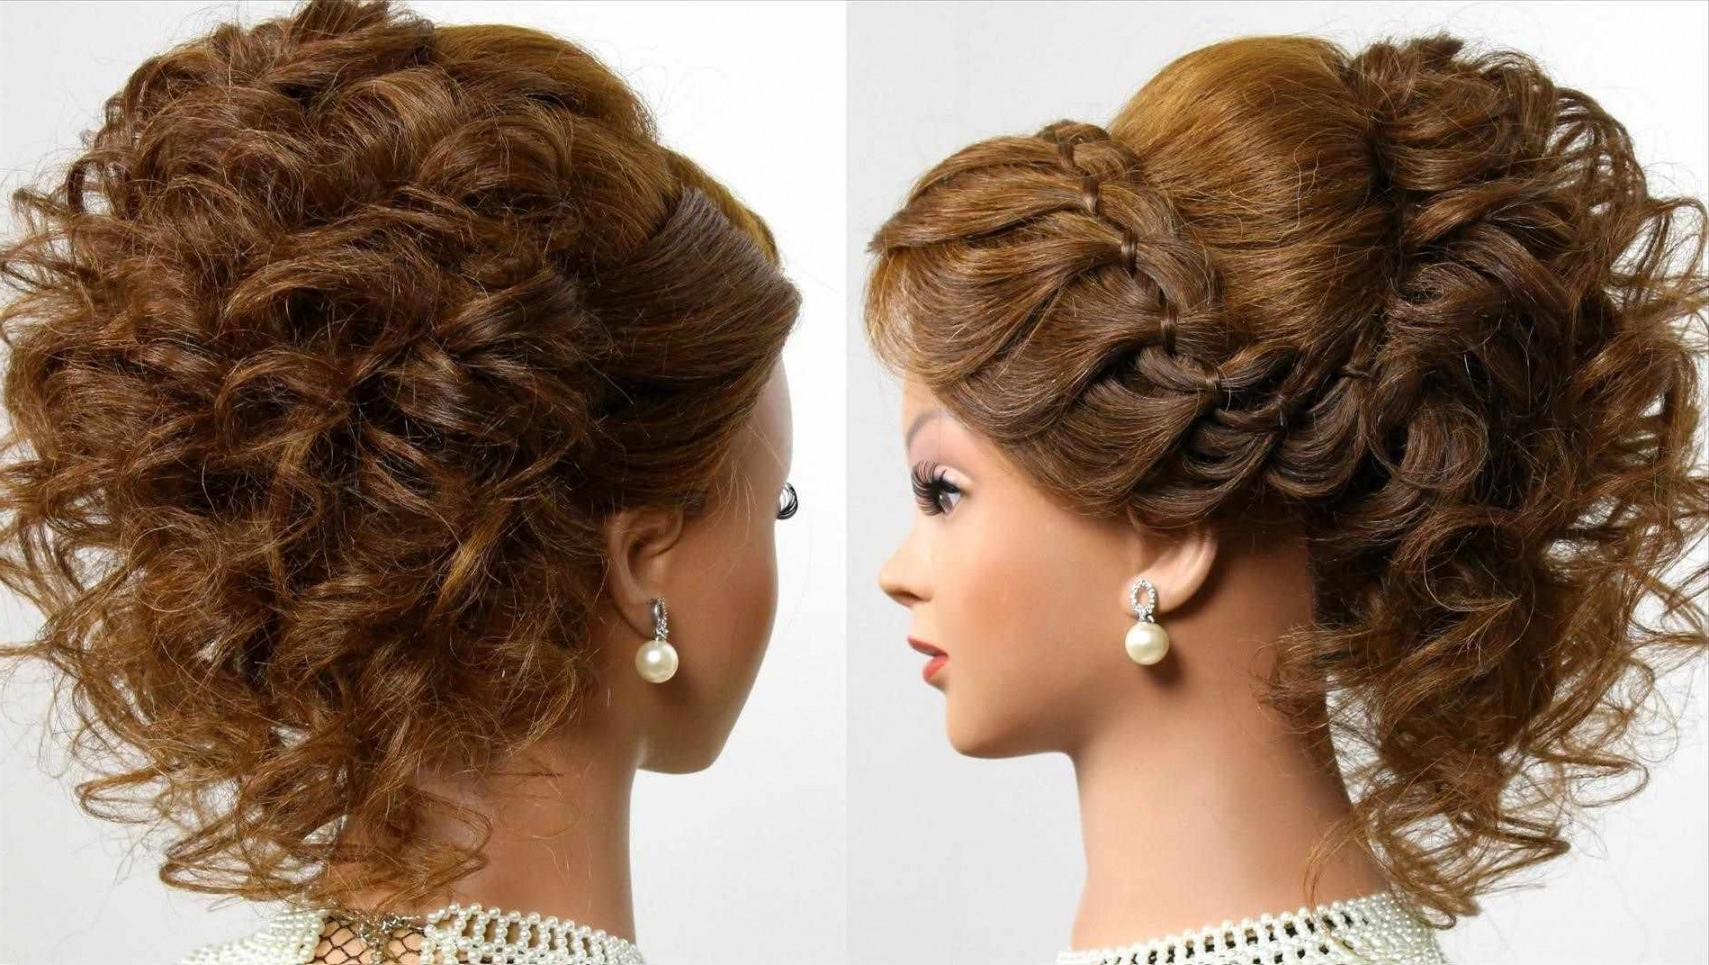 Bridal Updo Hairstyle For Long Medium Hair Soft Curled Or Wedding Inside Curly Updo Hairstyles For Medium Hair (View 4 of 15)